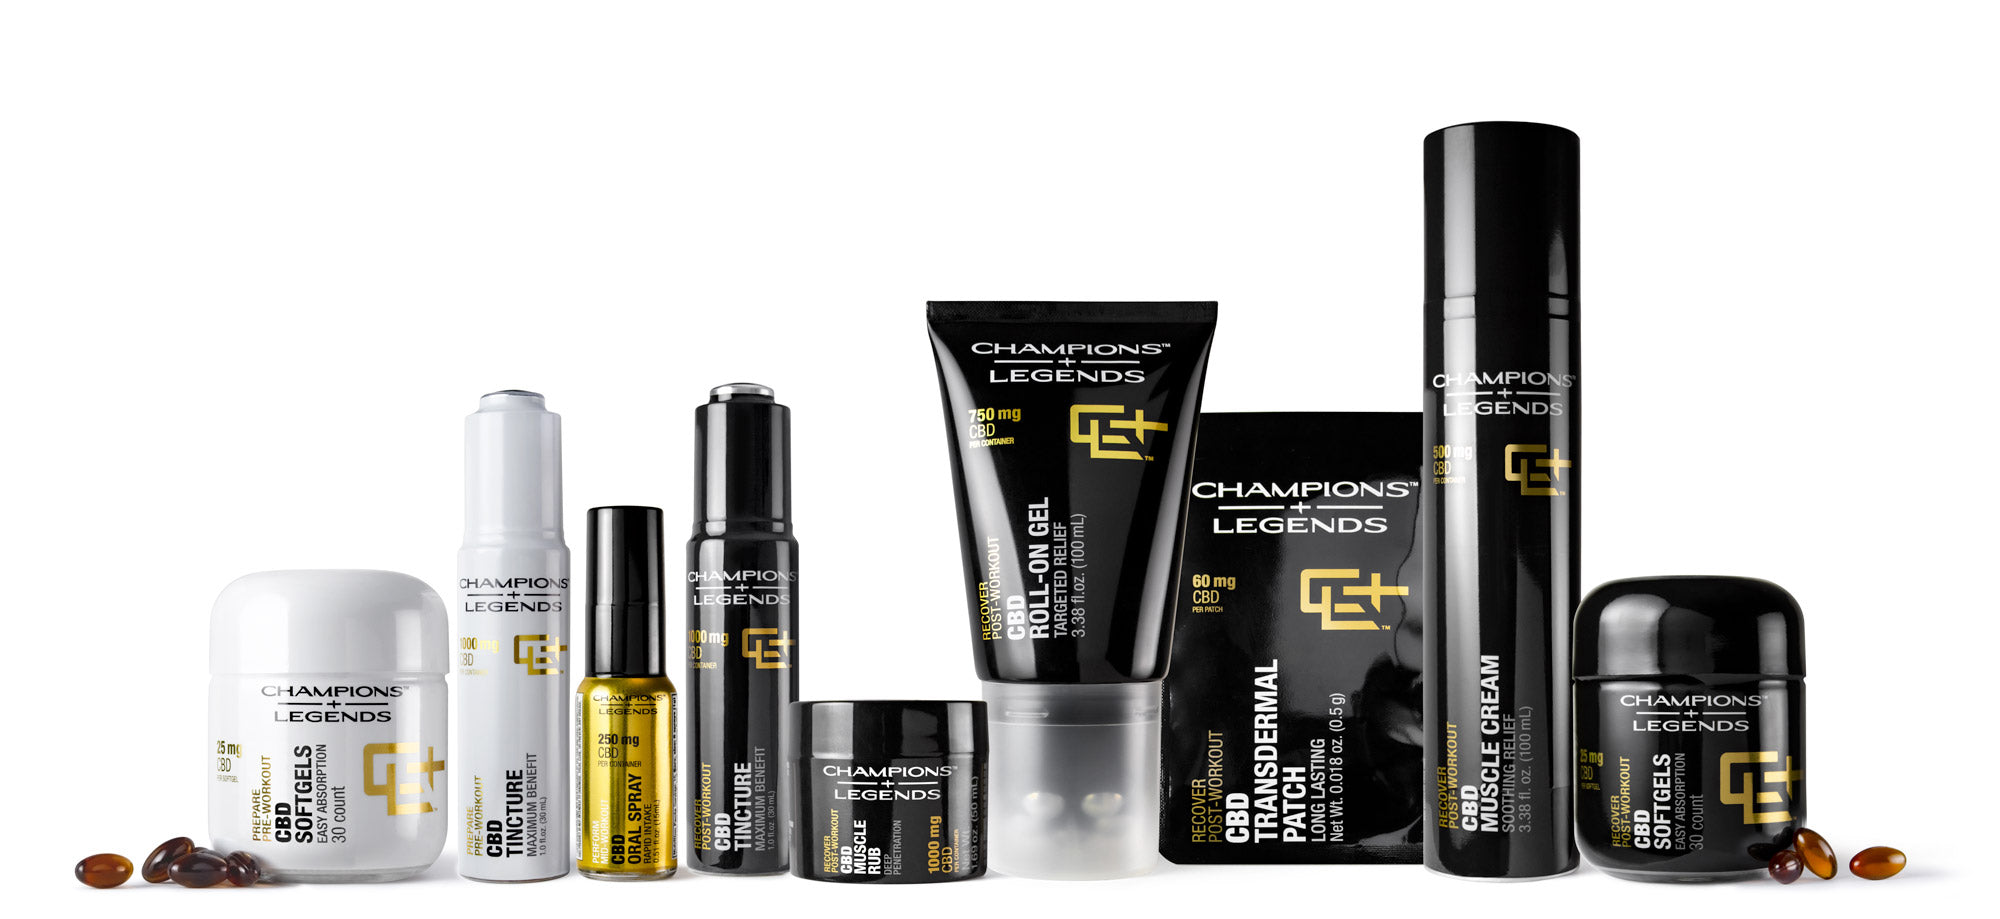 C+L Product Lineup